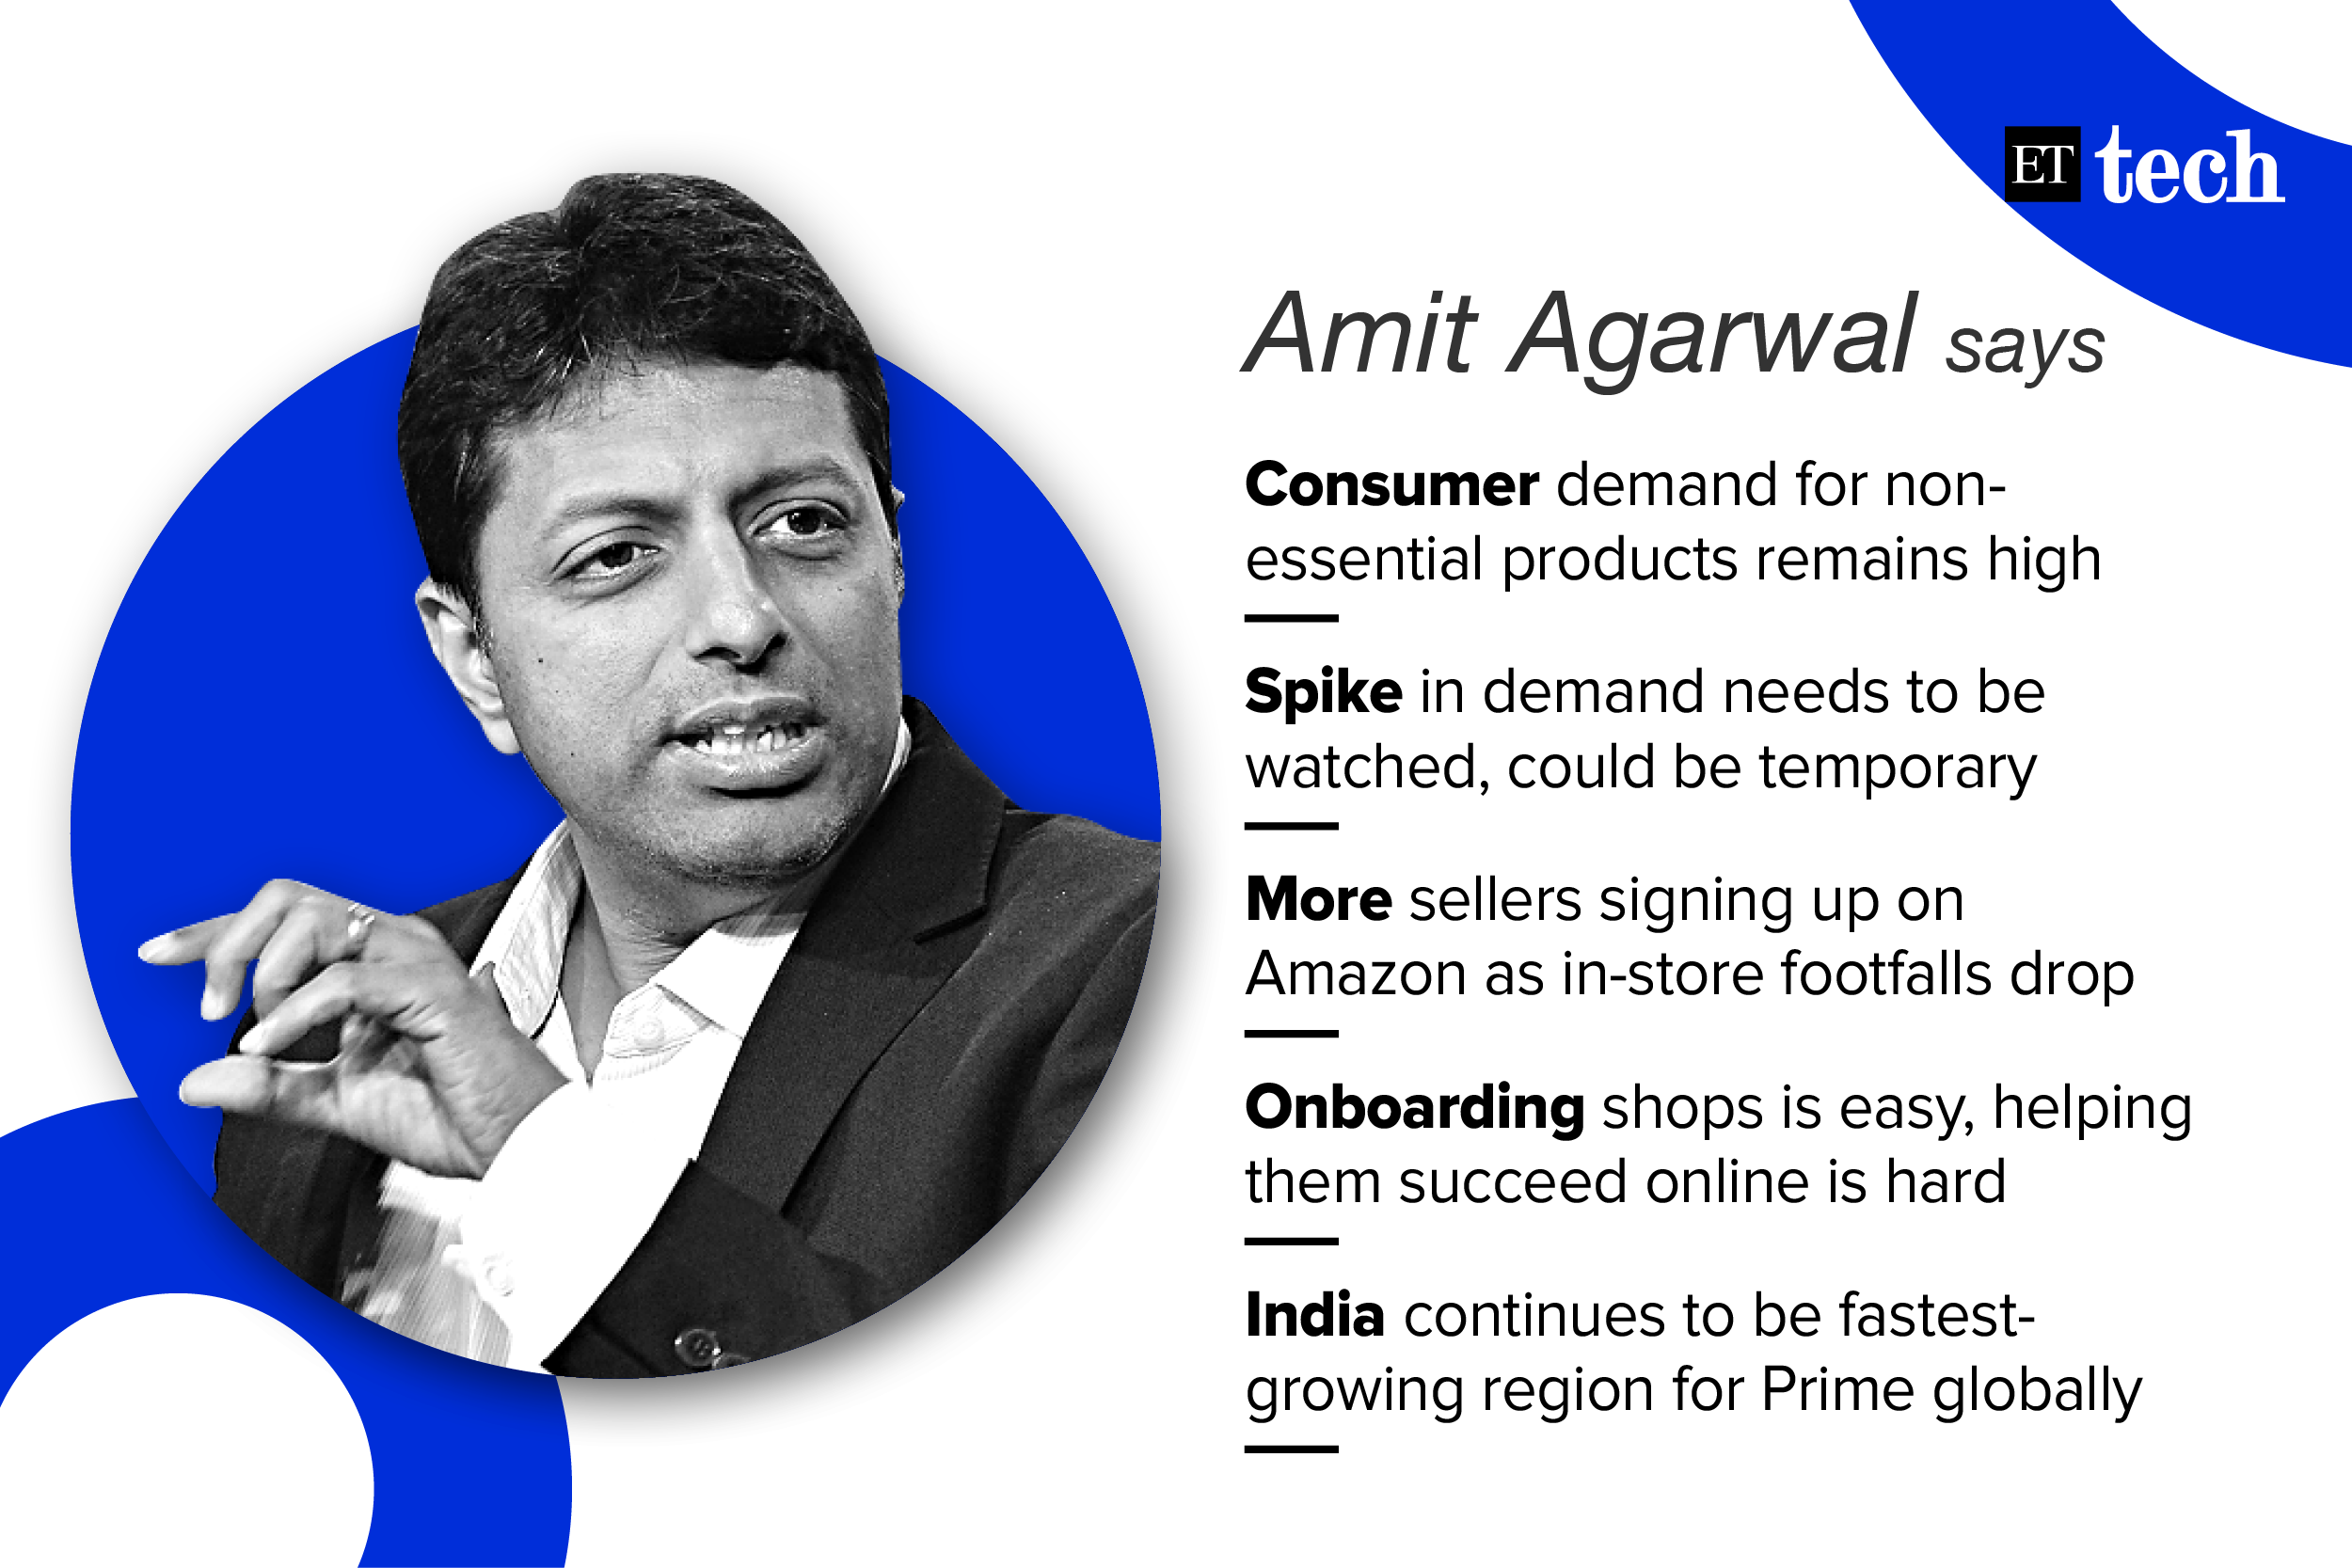 Helping sellers revive their business will jump-start the economy: Amazon's Amit Agarwal